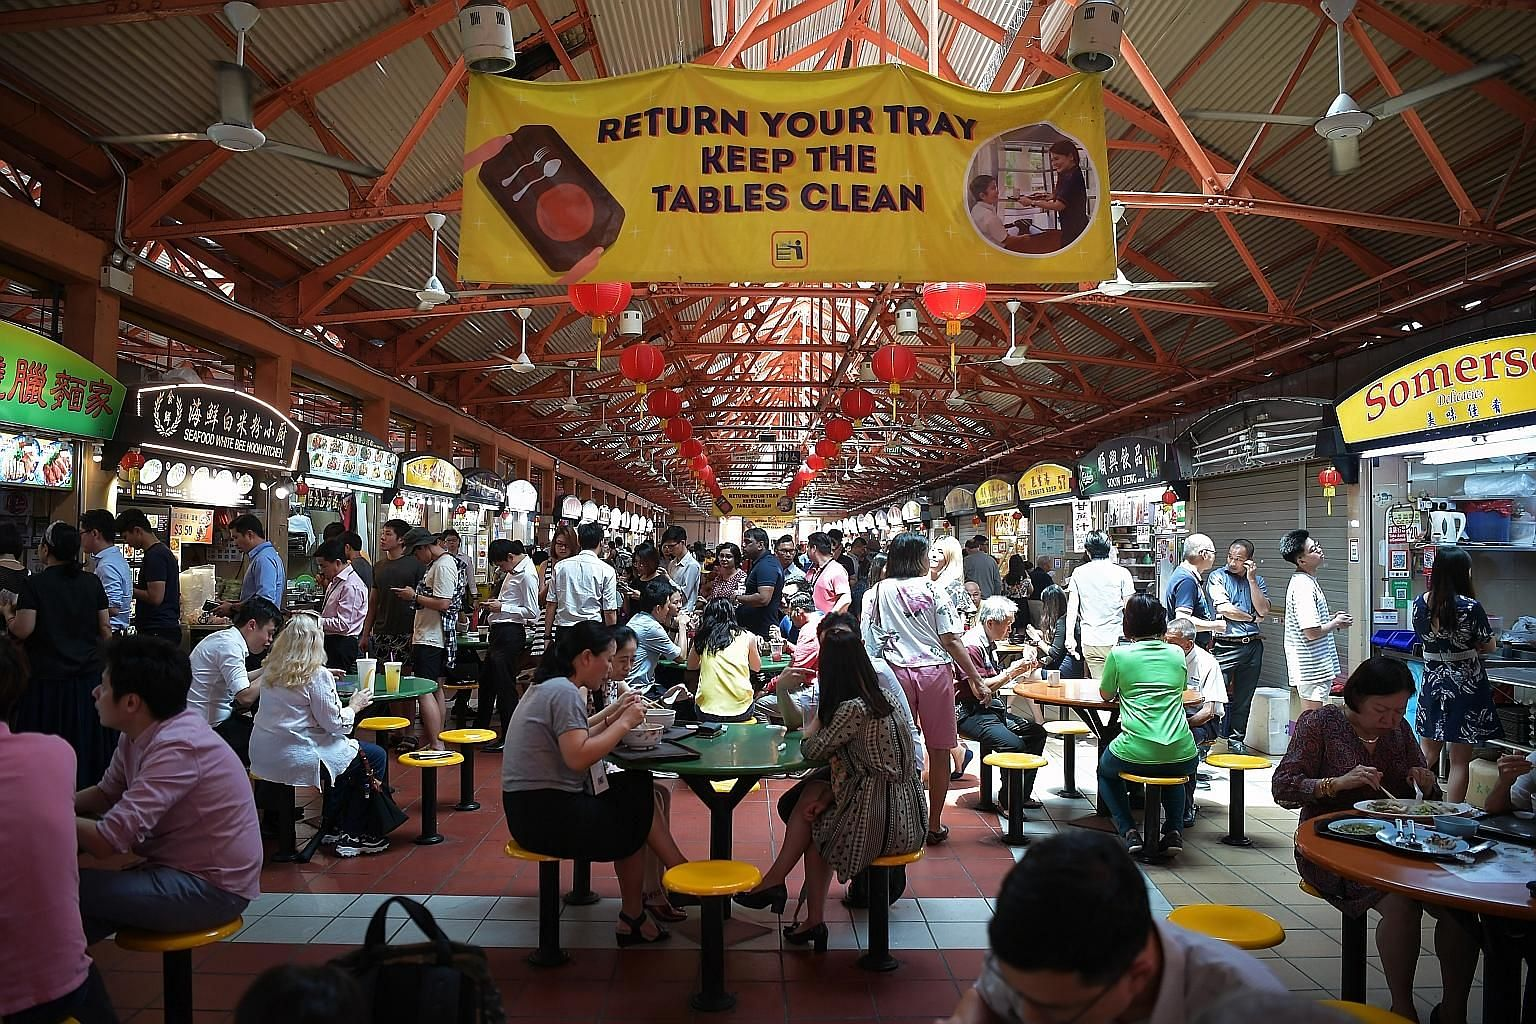 Eating out as a portion of total monthly food expenditure grew to 68 per cent from 62 per cent, mainly due to higher spending at restaurants, cafes and pubs, although hawker centres and foodcourts continued to make up the largest share of expenditure